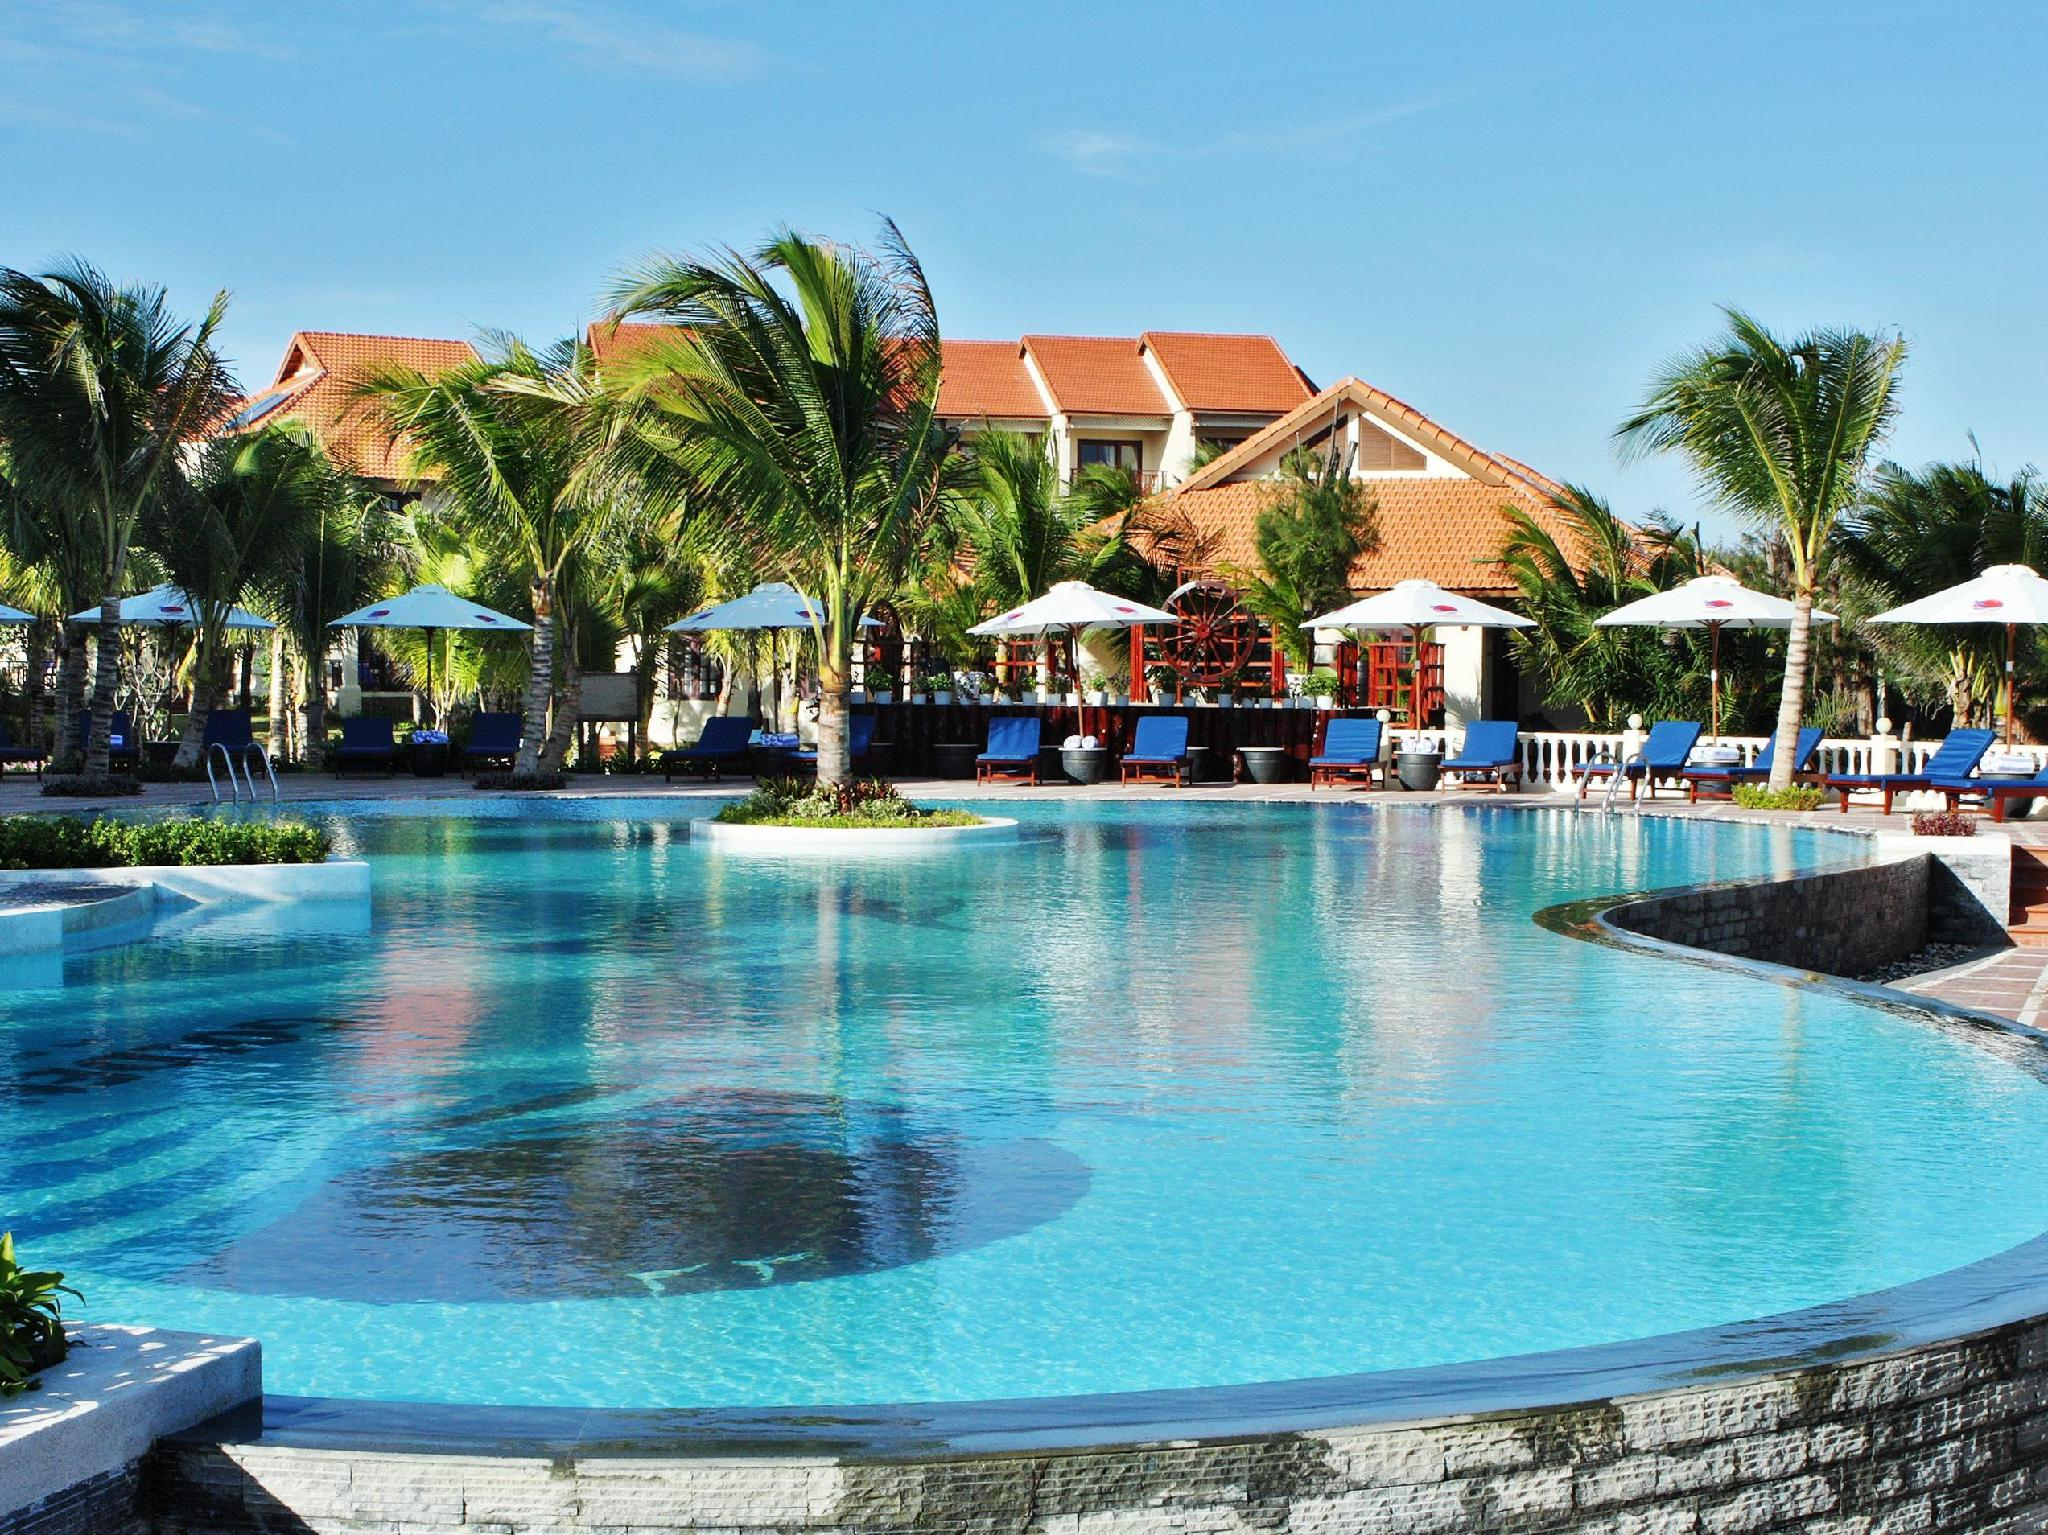 Golden Coast Resort and Spa Phan Thiet